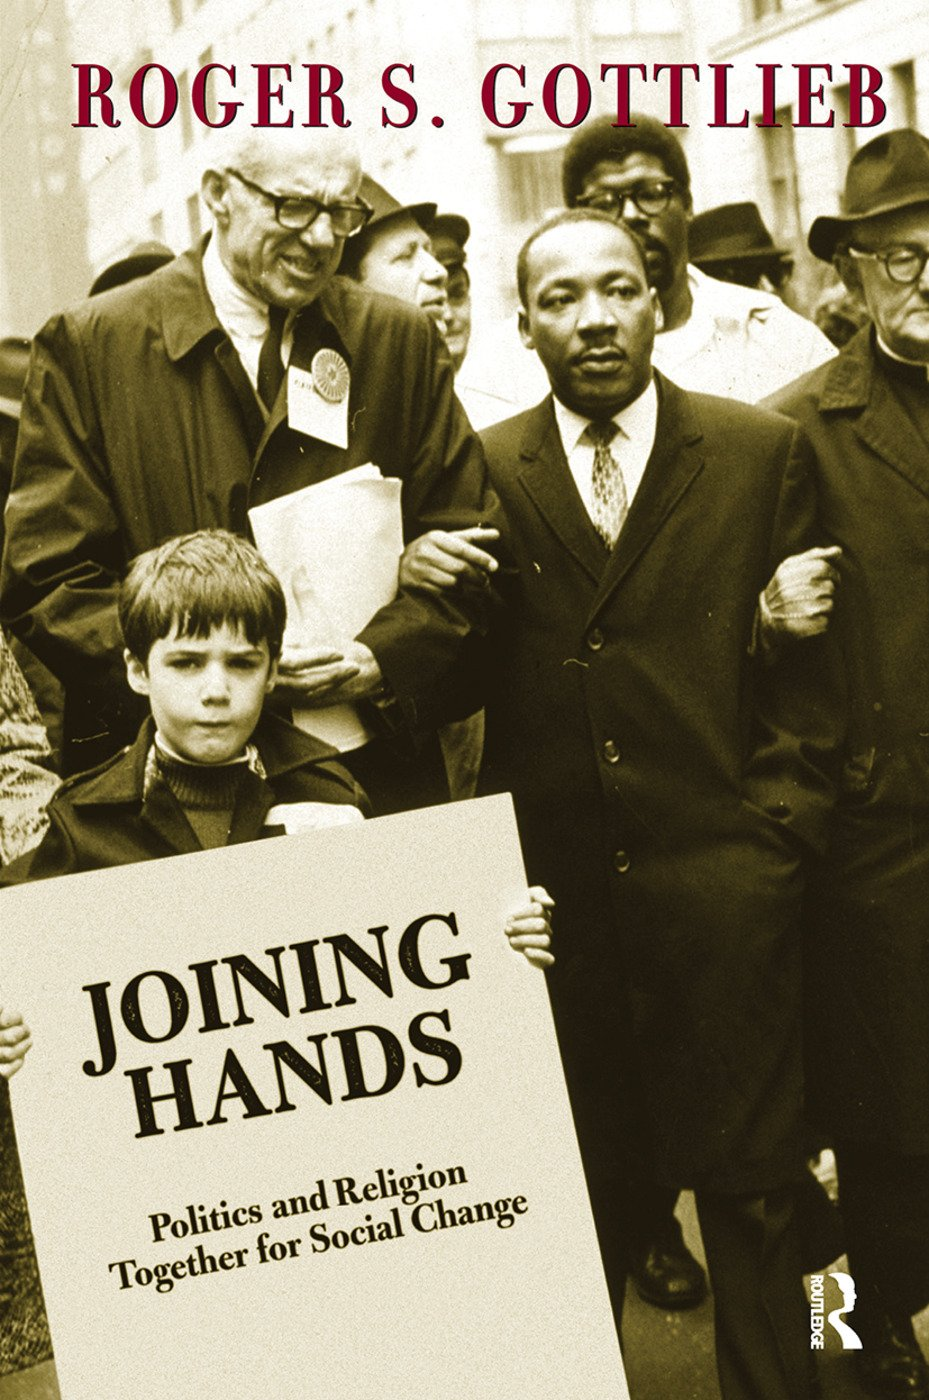 Joining Hands: Politics And Religion Together For Social Change book cover